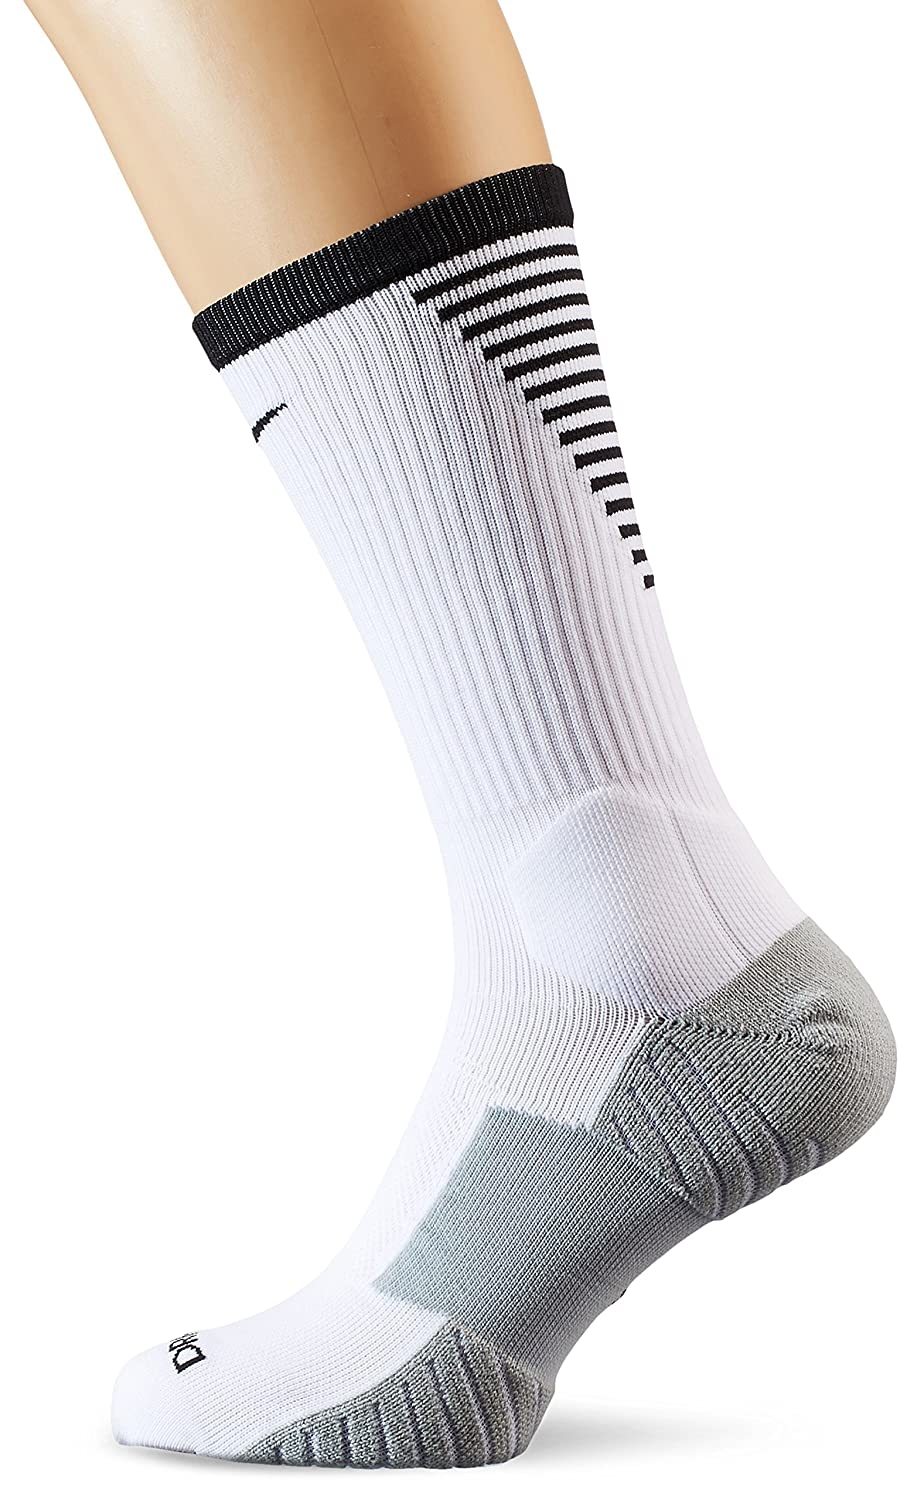 b365575e999d Amazon.com  Nike Men s Squad Football Crew Socks Size 8-12 (Red White)   Sports   Outdoors